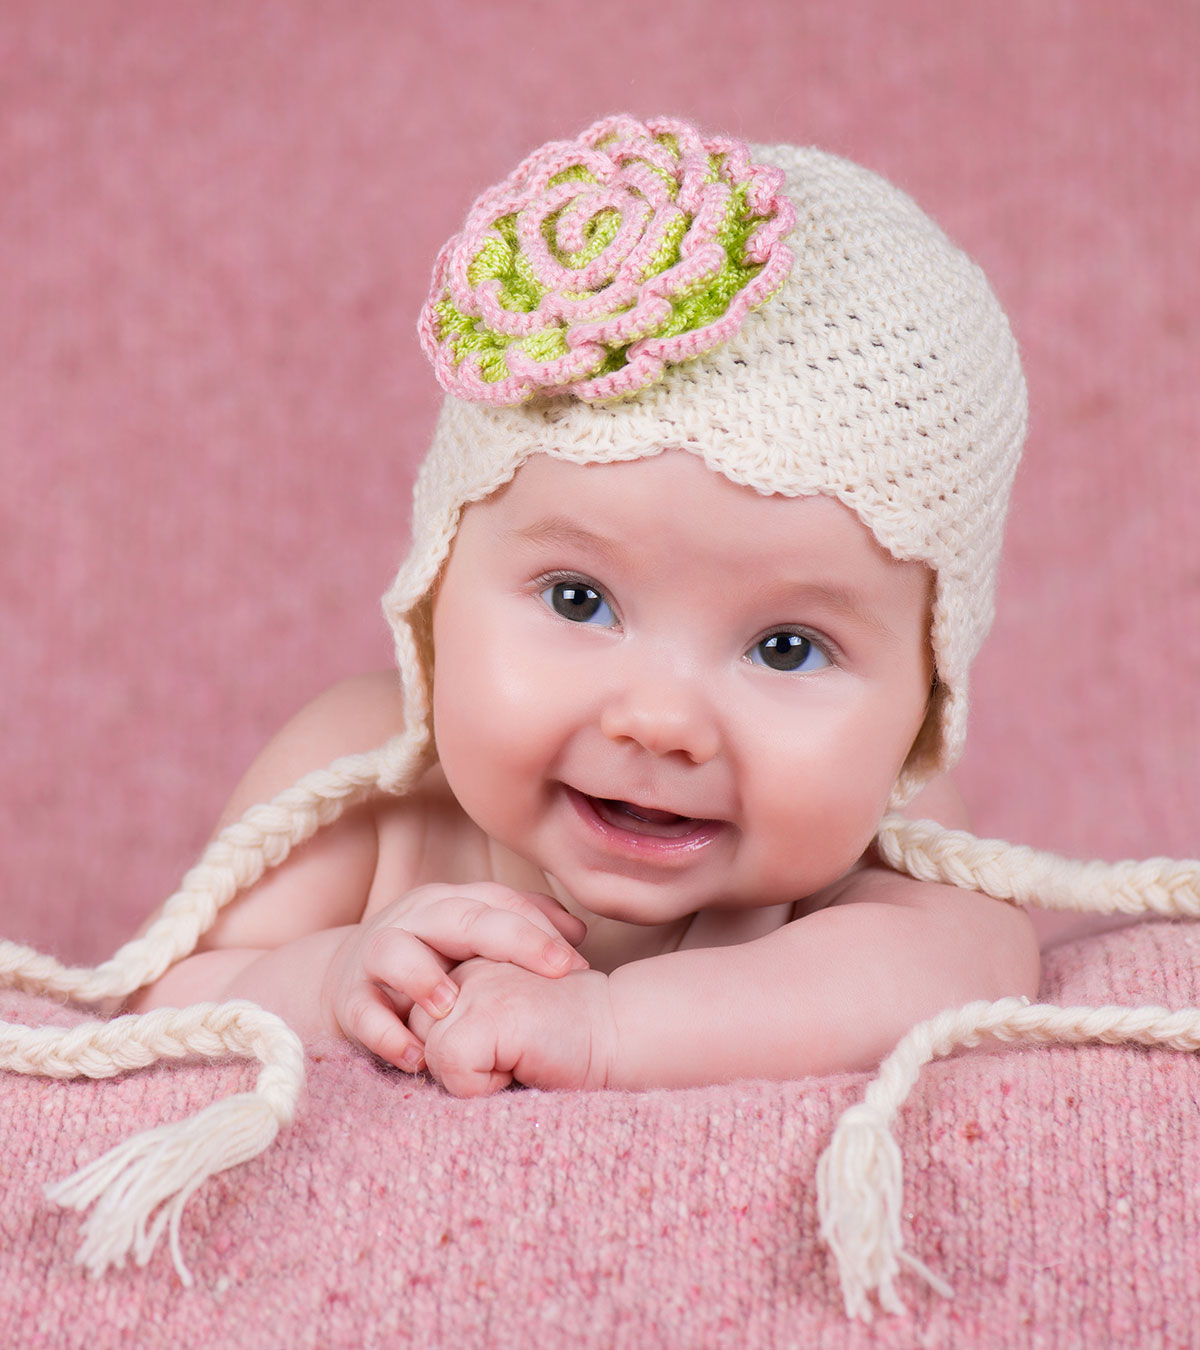 53 Ultimate Baby Names That Mean New Beginning And Rebirth - MomJunction